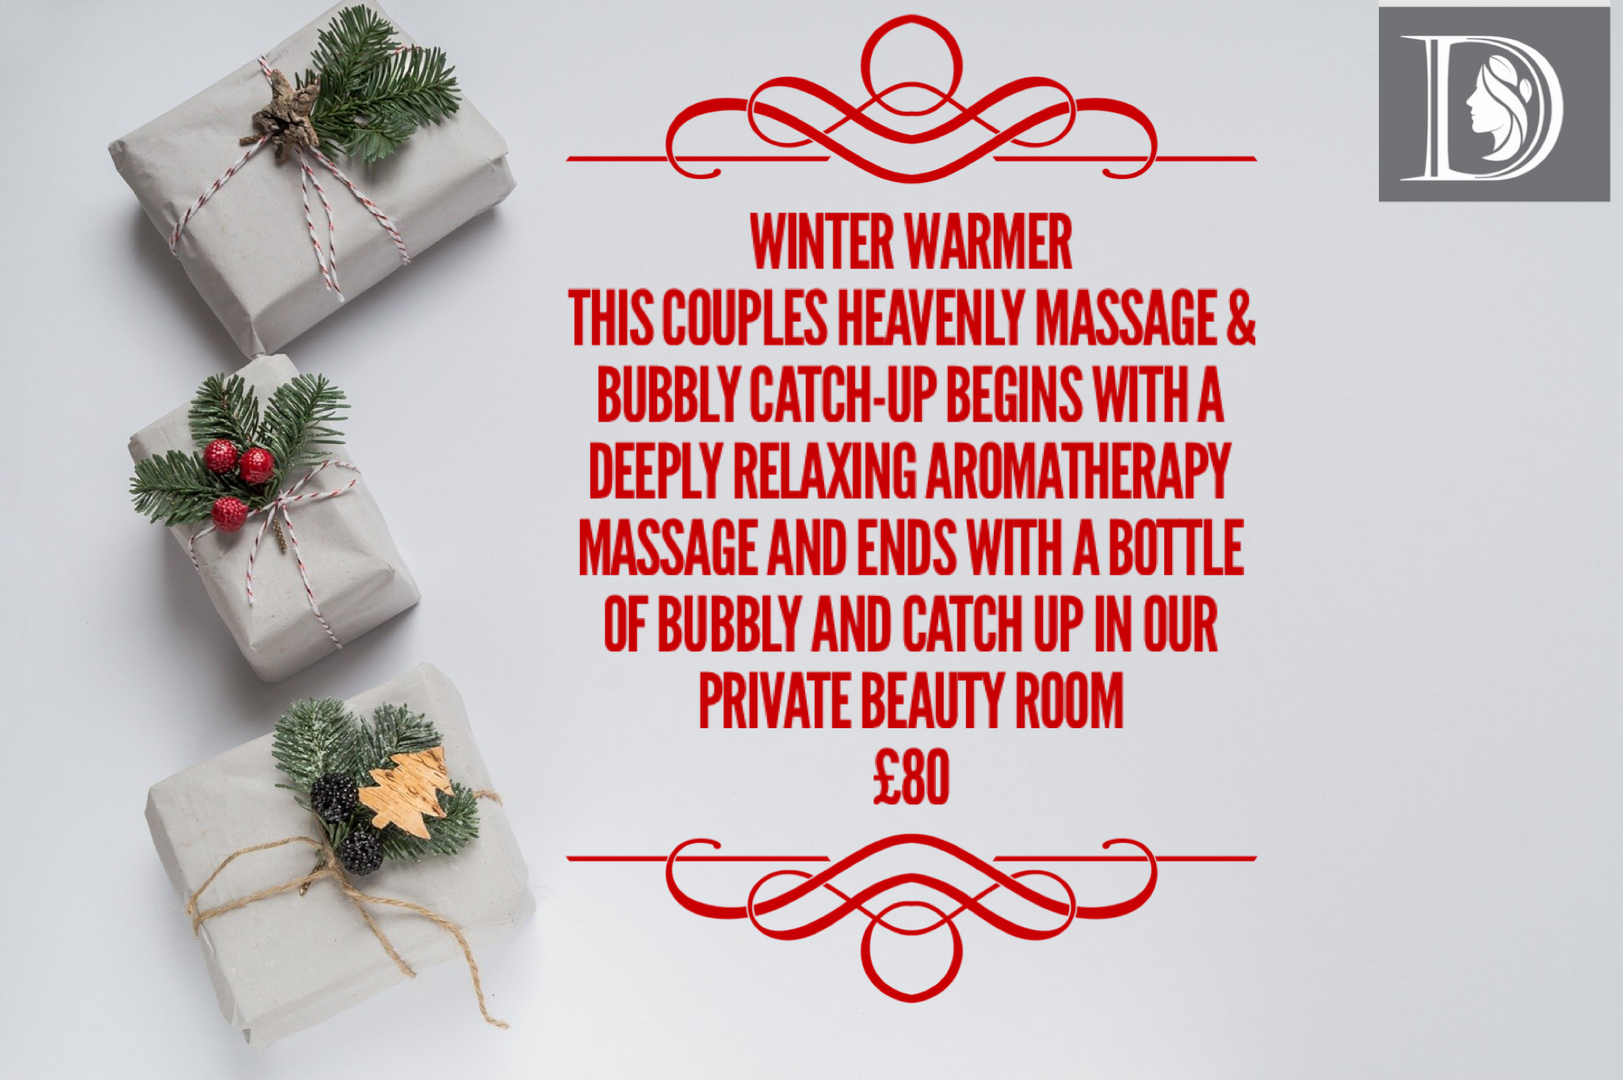 Winter Warmer at DermalEssence